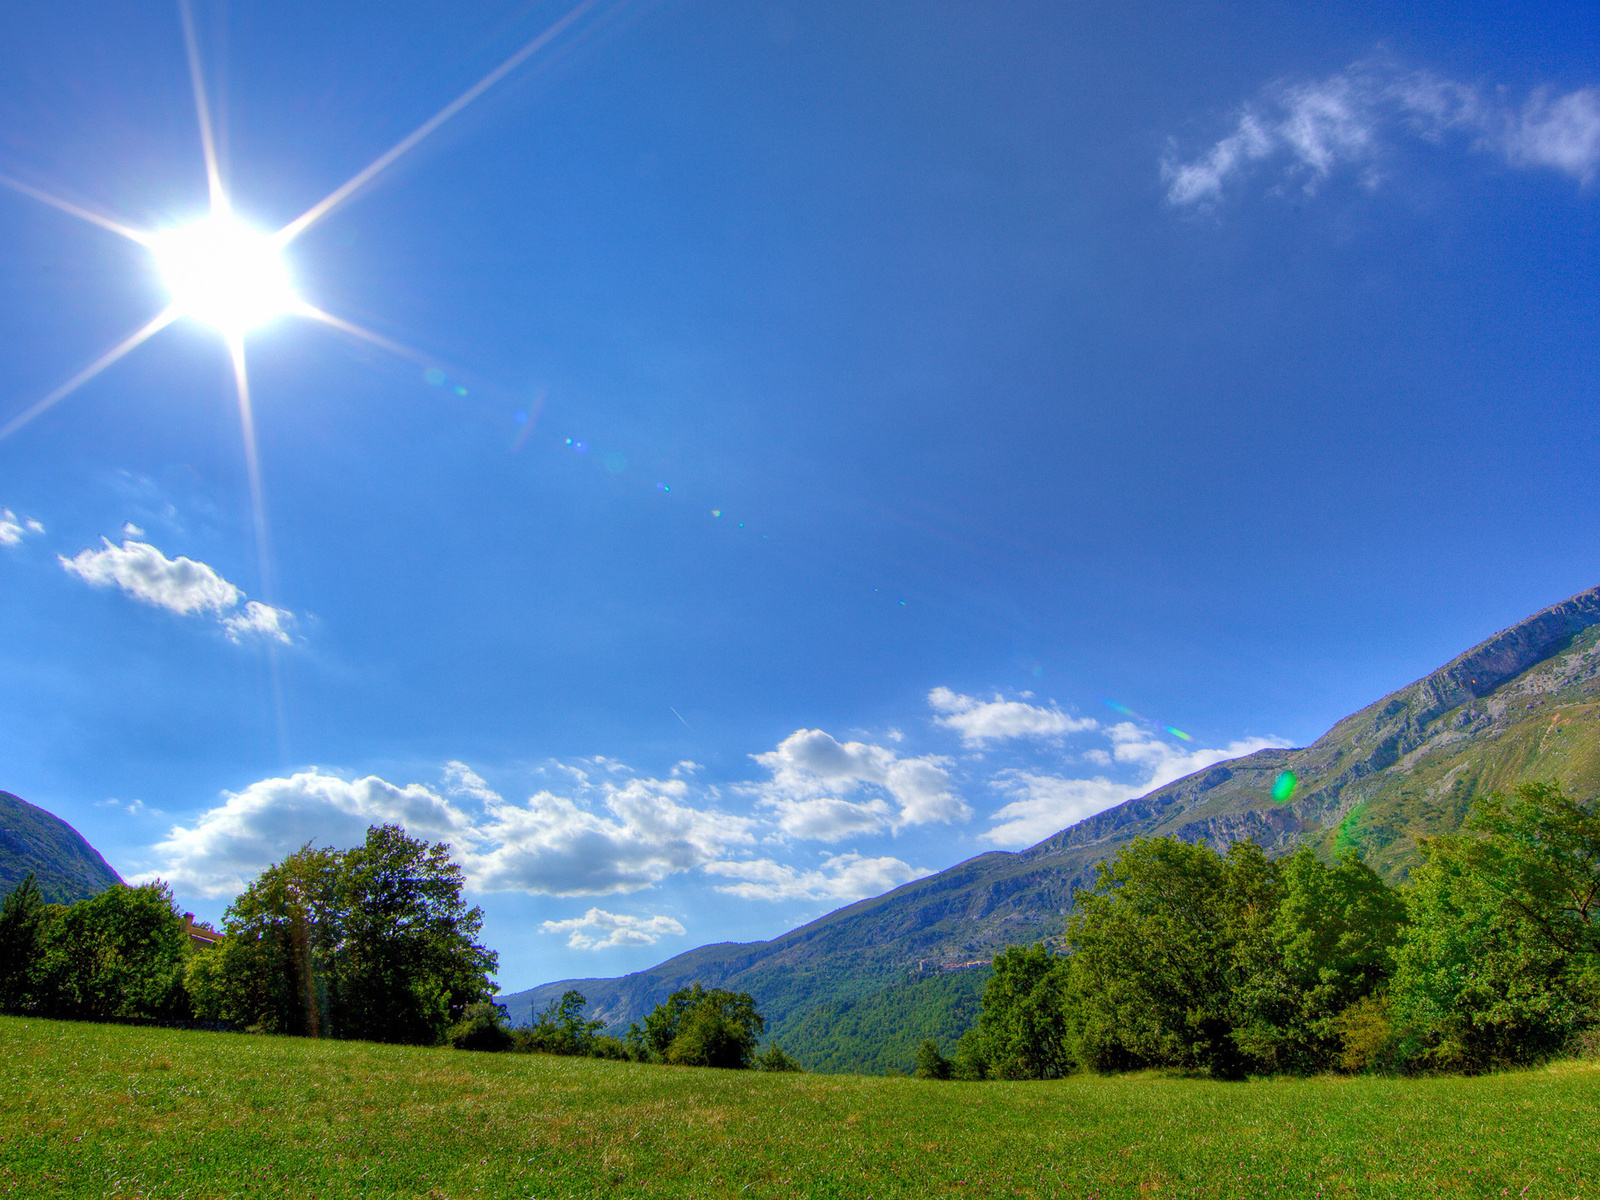 19916 download wallpaper Landscape, Sky, Mountains, Clouds screensavers and pictures for free